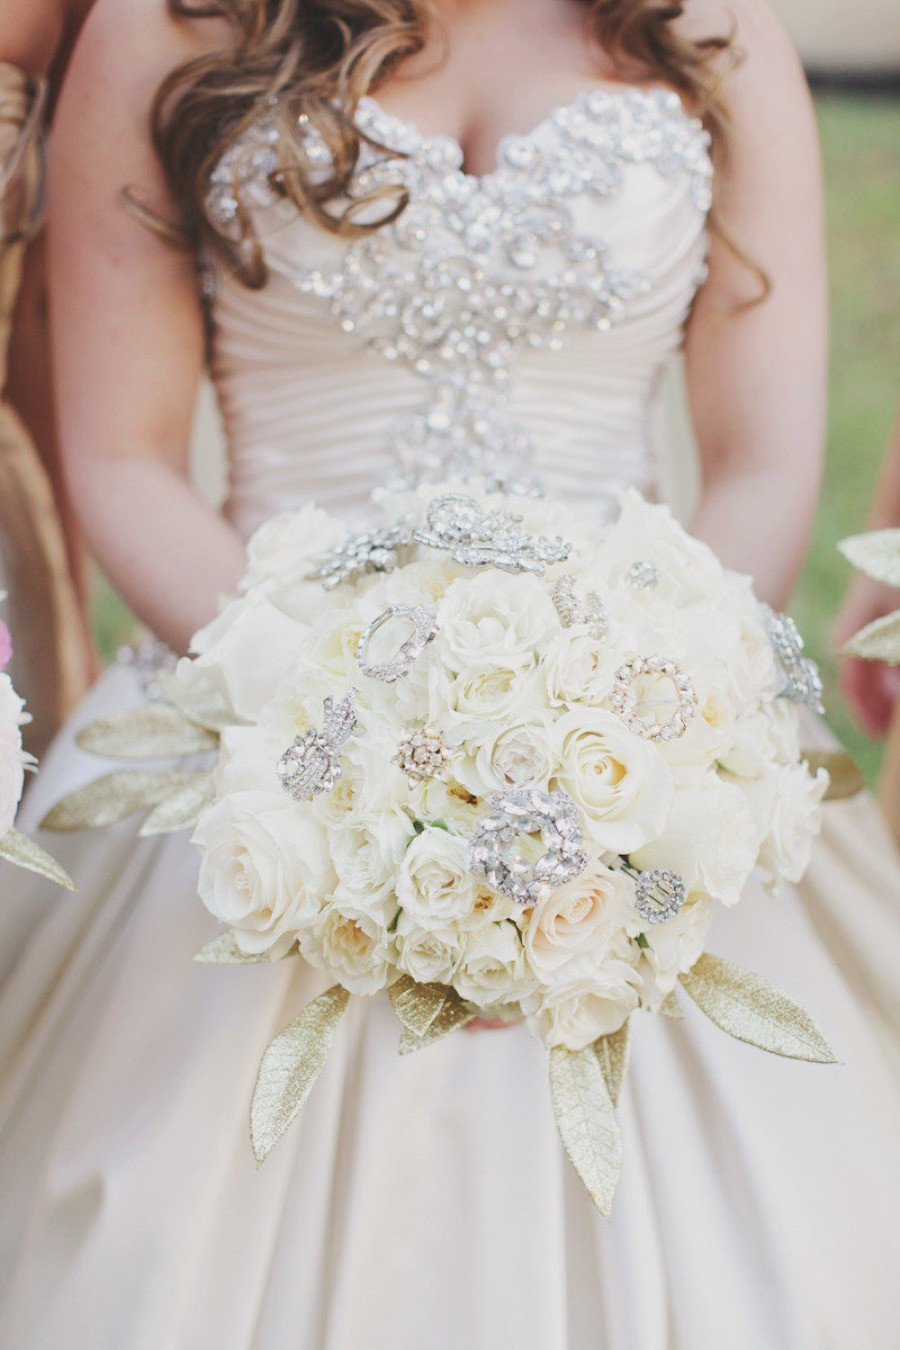 Bejeweled Flower Bouquet By Forever Photography Studio The Big Fat